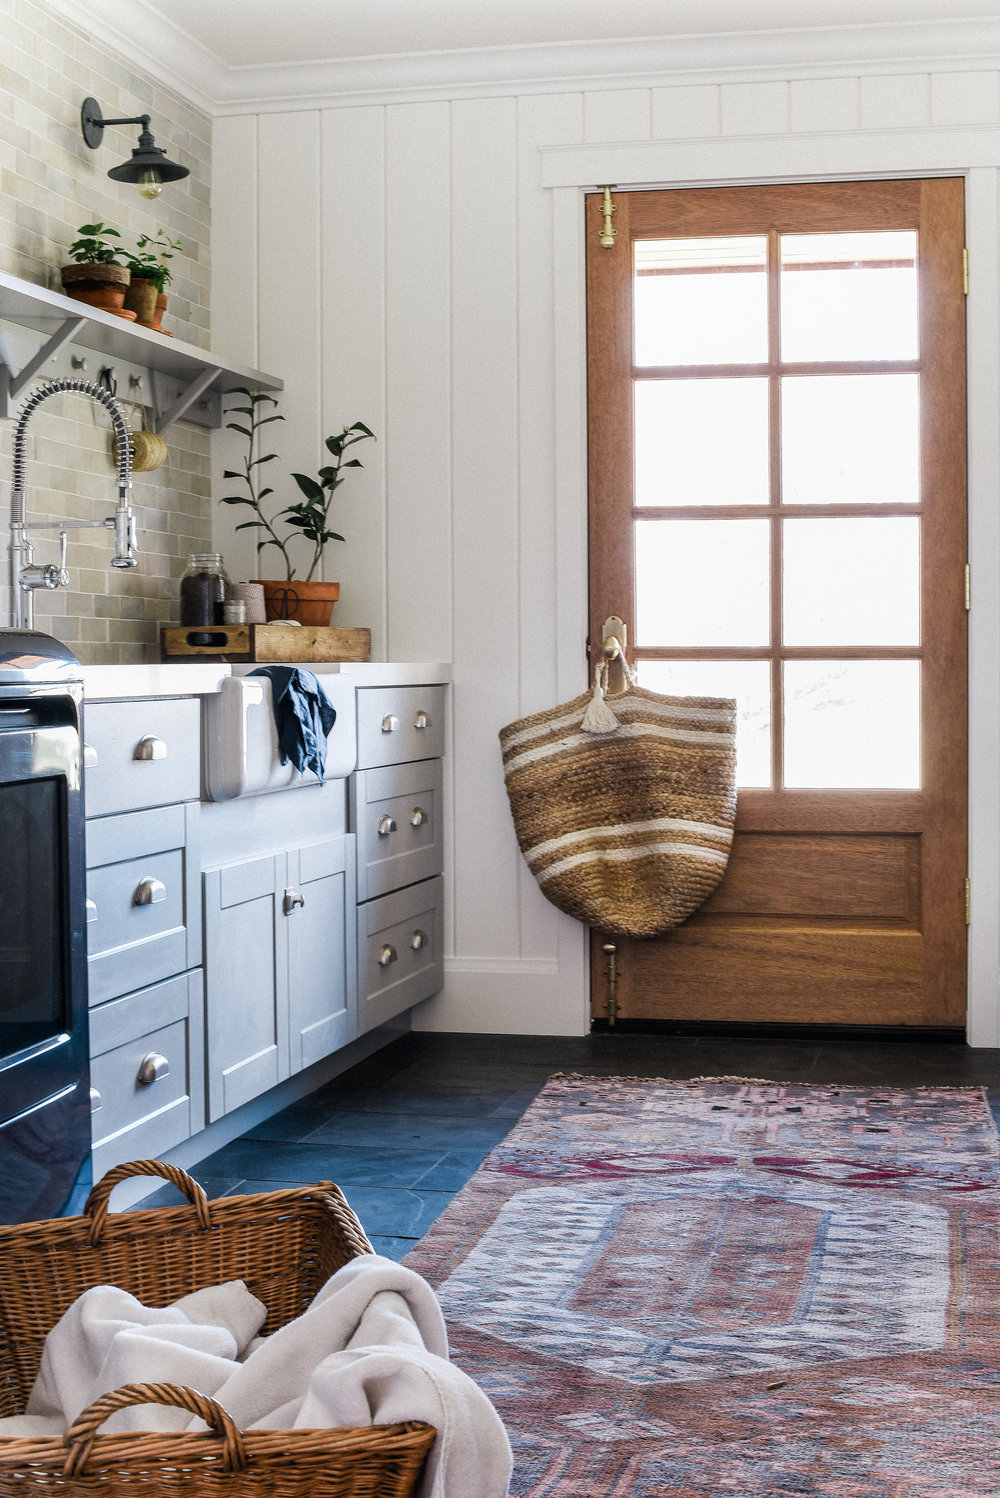 Laundry Room - Our laundry room blends modern design elements with a little French country decor to create the perfect place to complete chores.